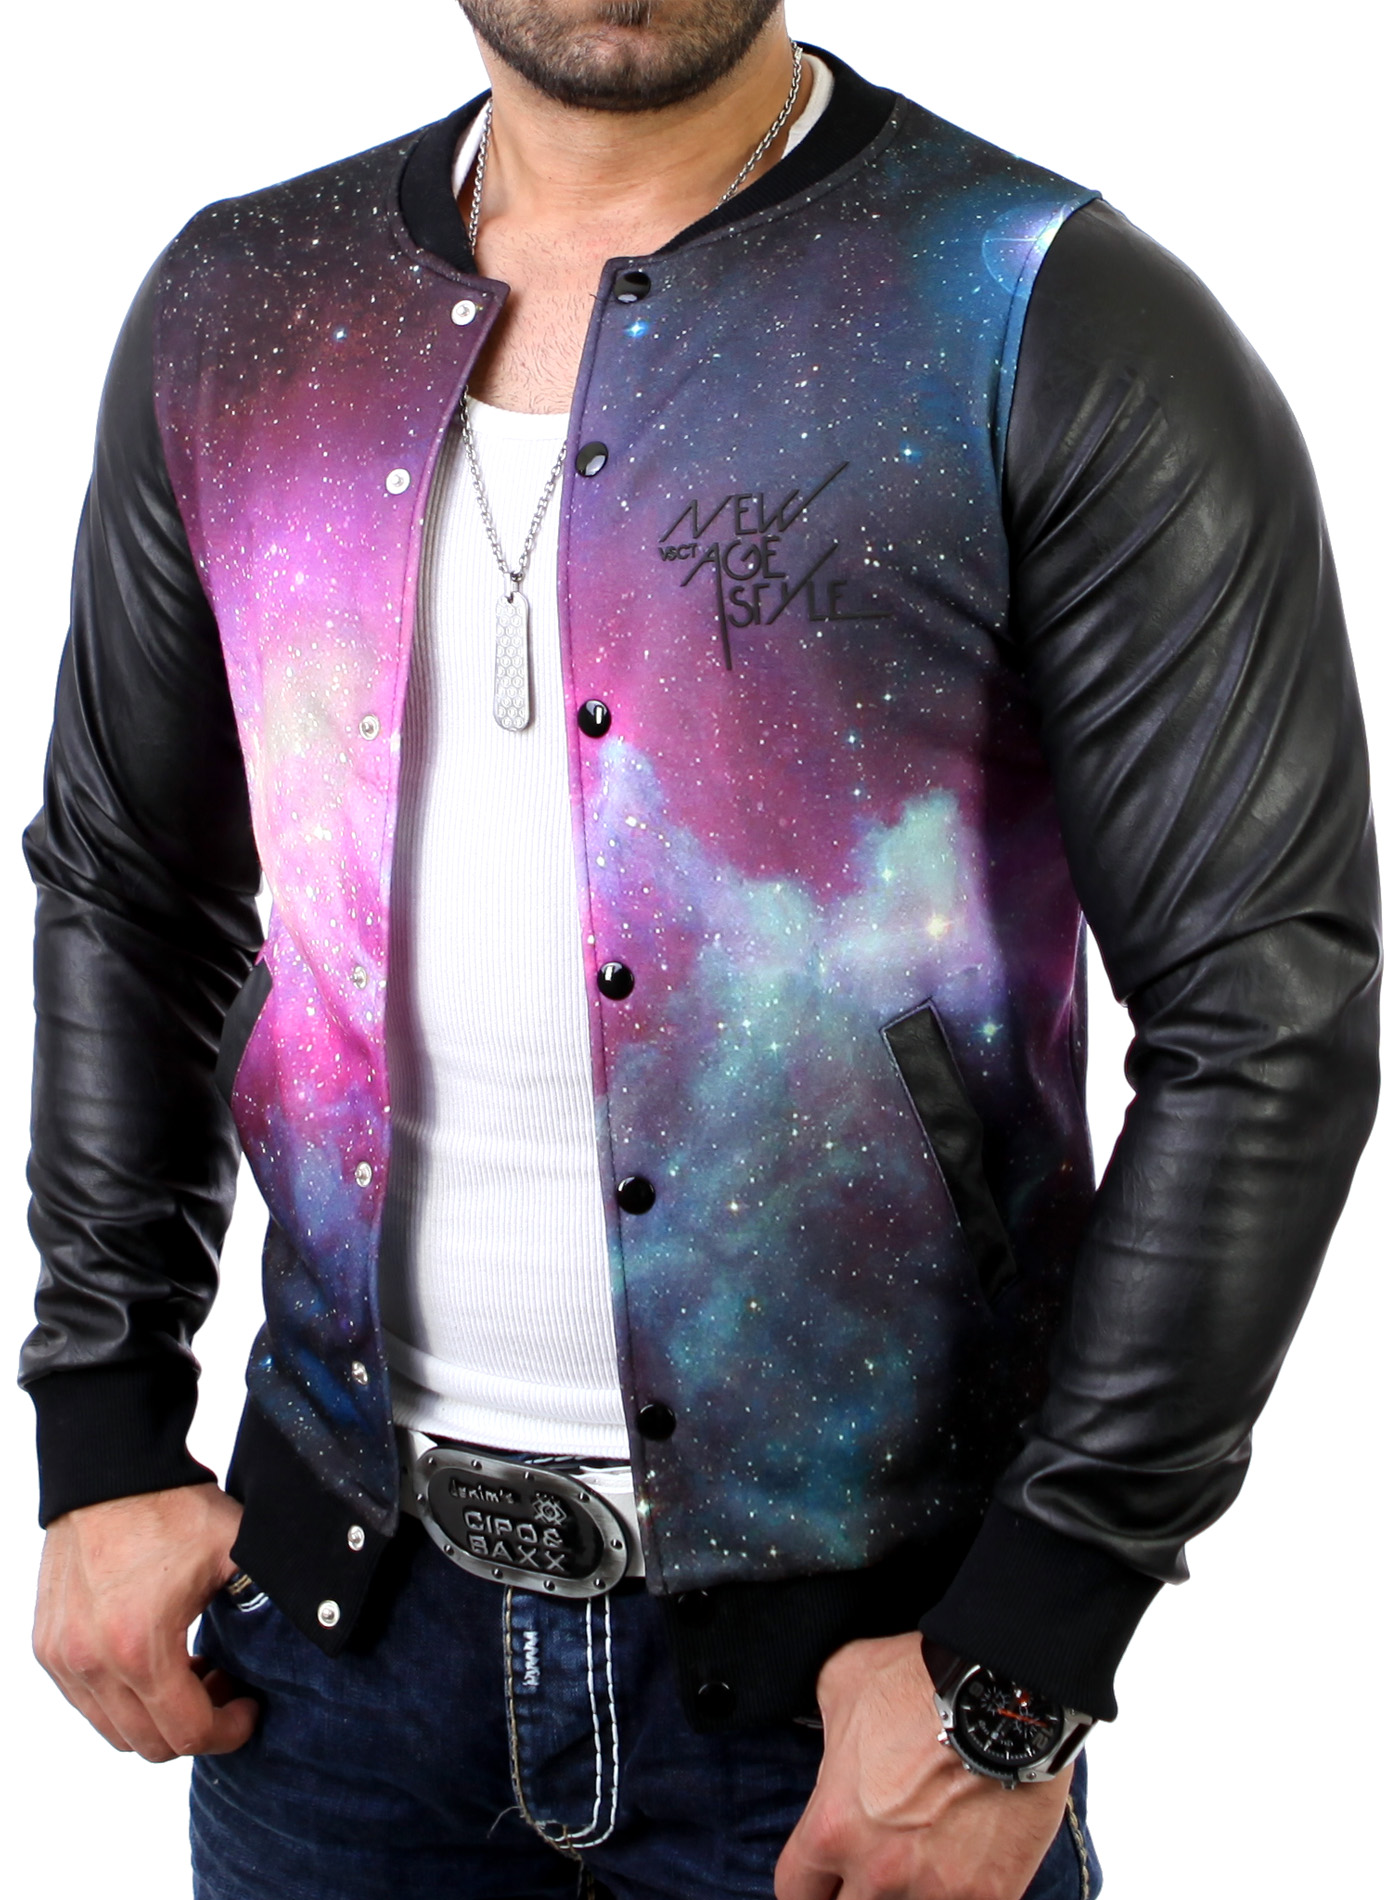 vsct herren college jacke mit leder rmeln galaxy sweatjacke jacke v. Black Bedroom Furniture Sets. Home Design Ideas